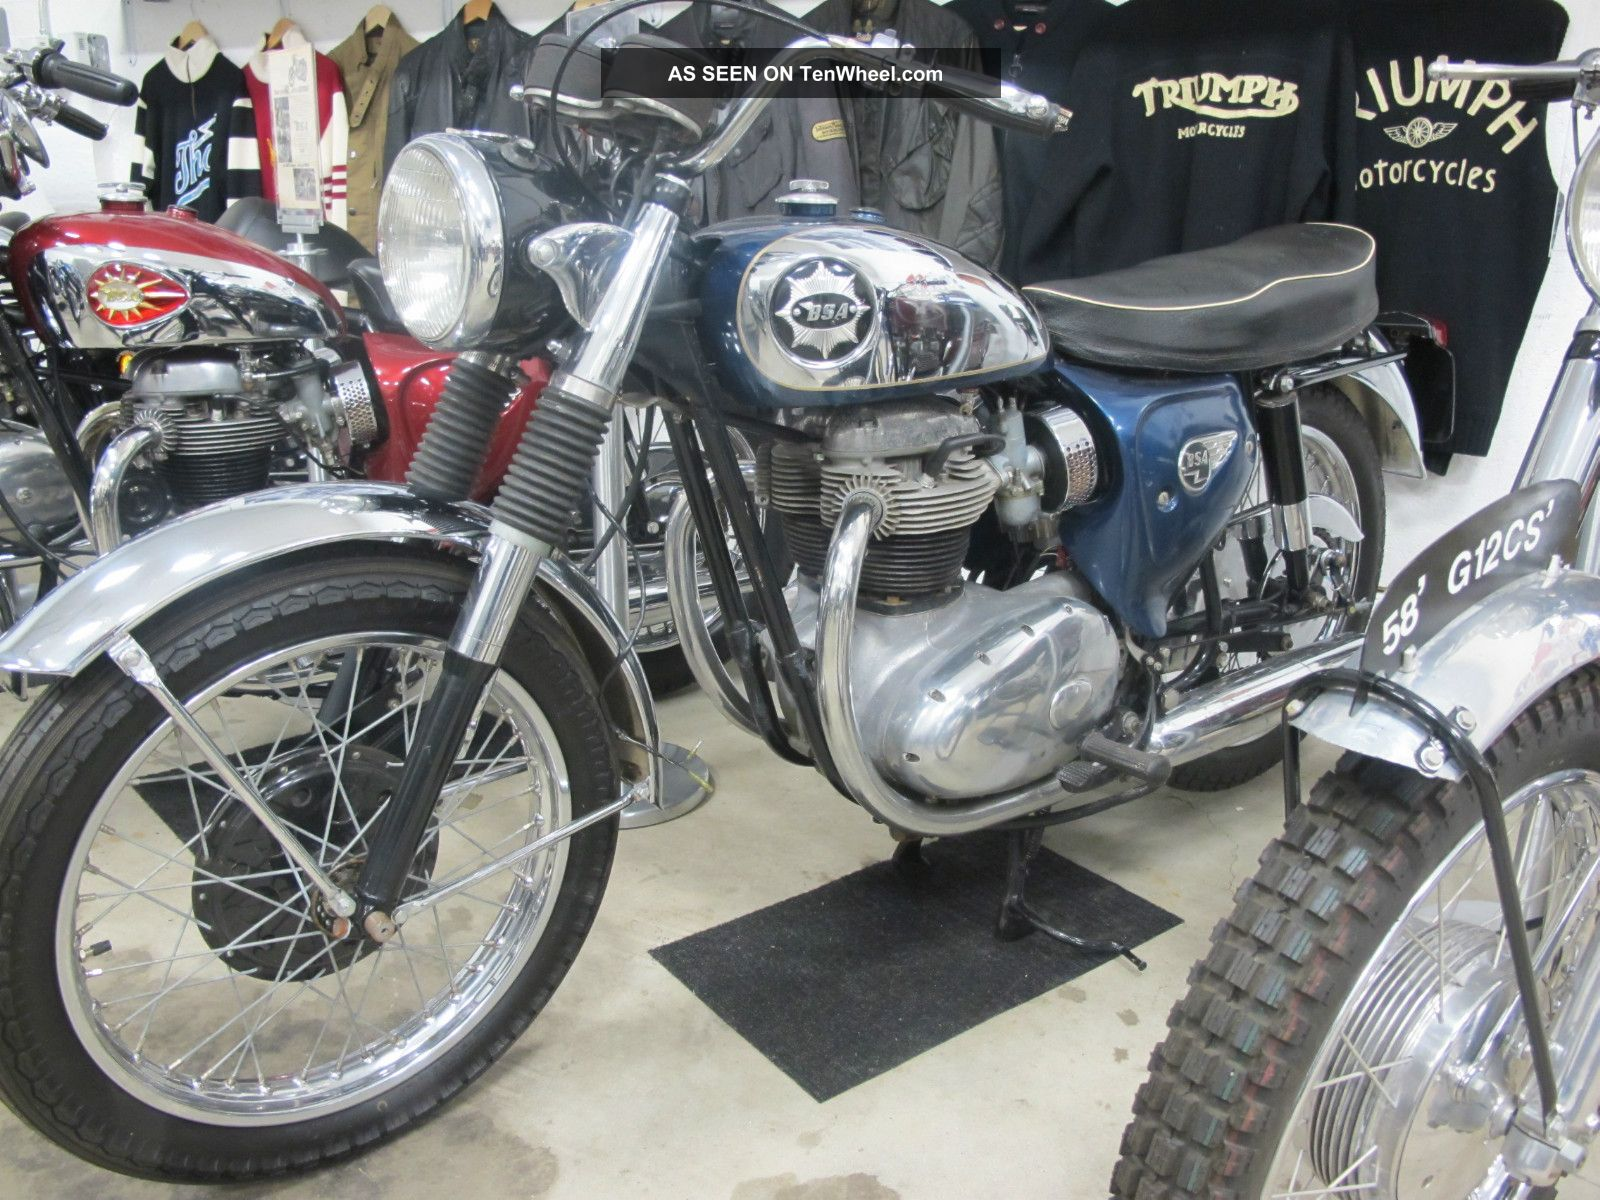 1964 Bsa Lightning Rocket Classic BSA photo